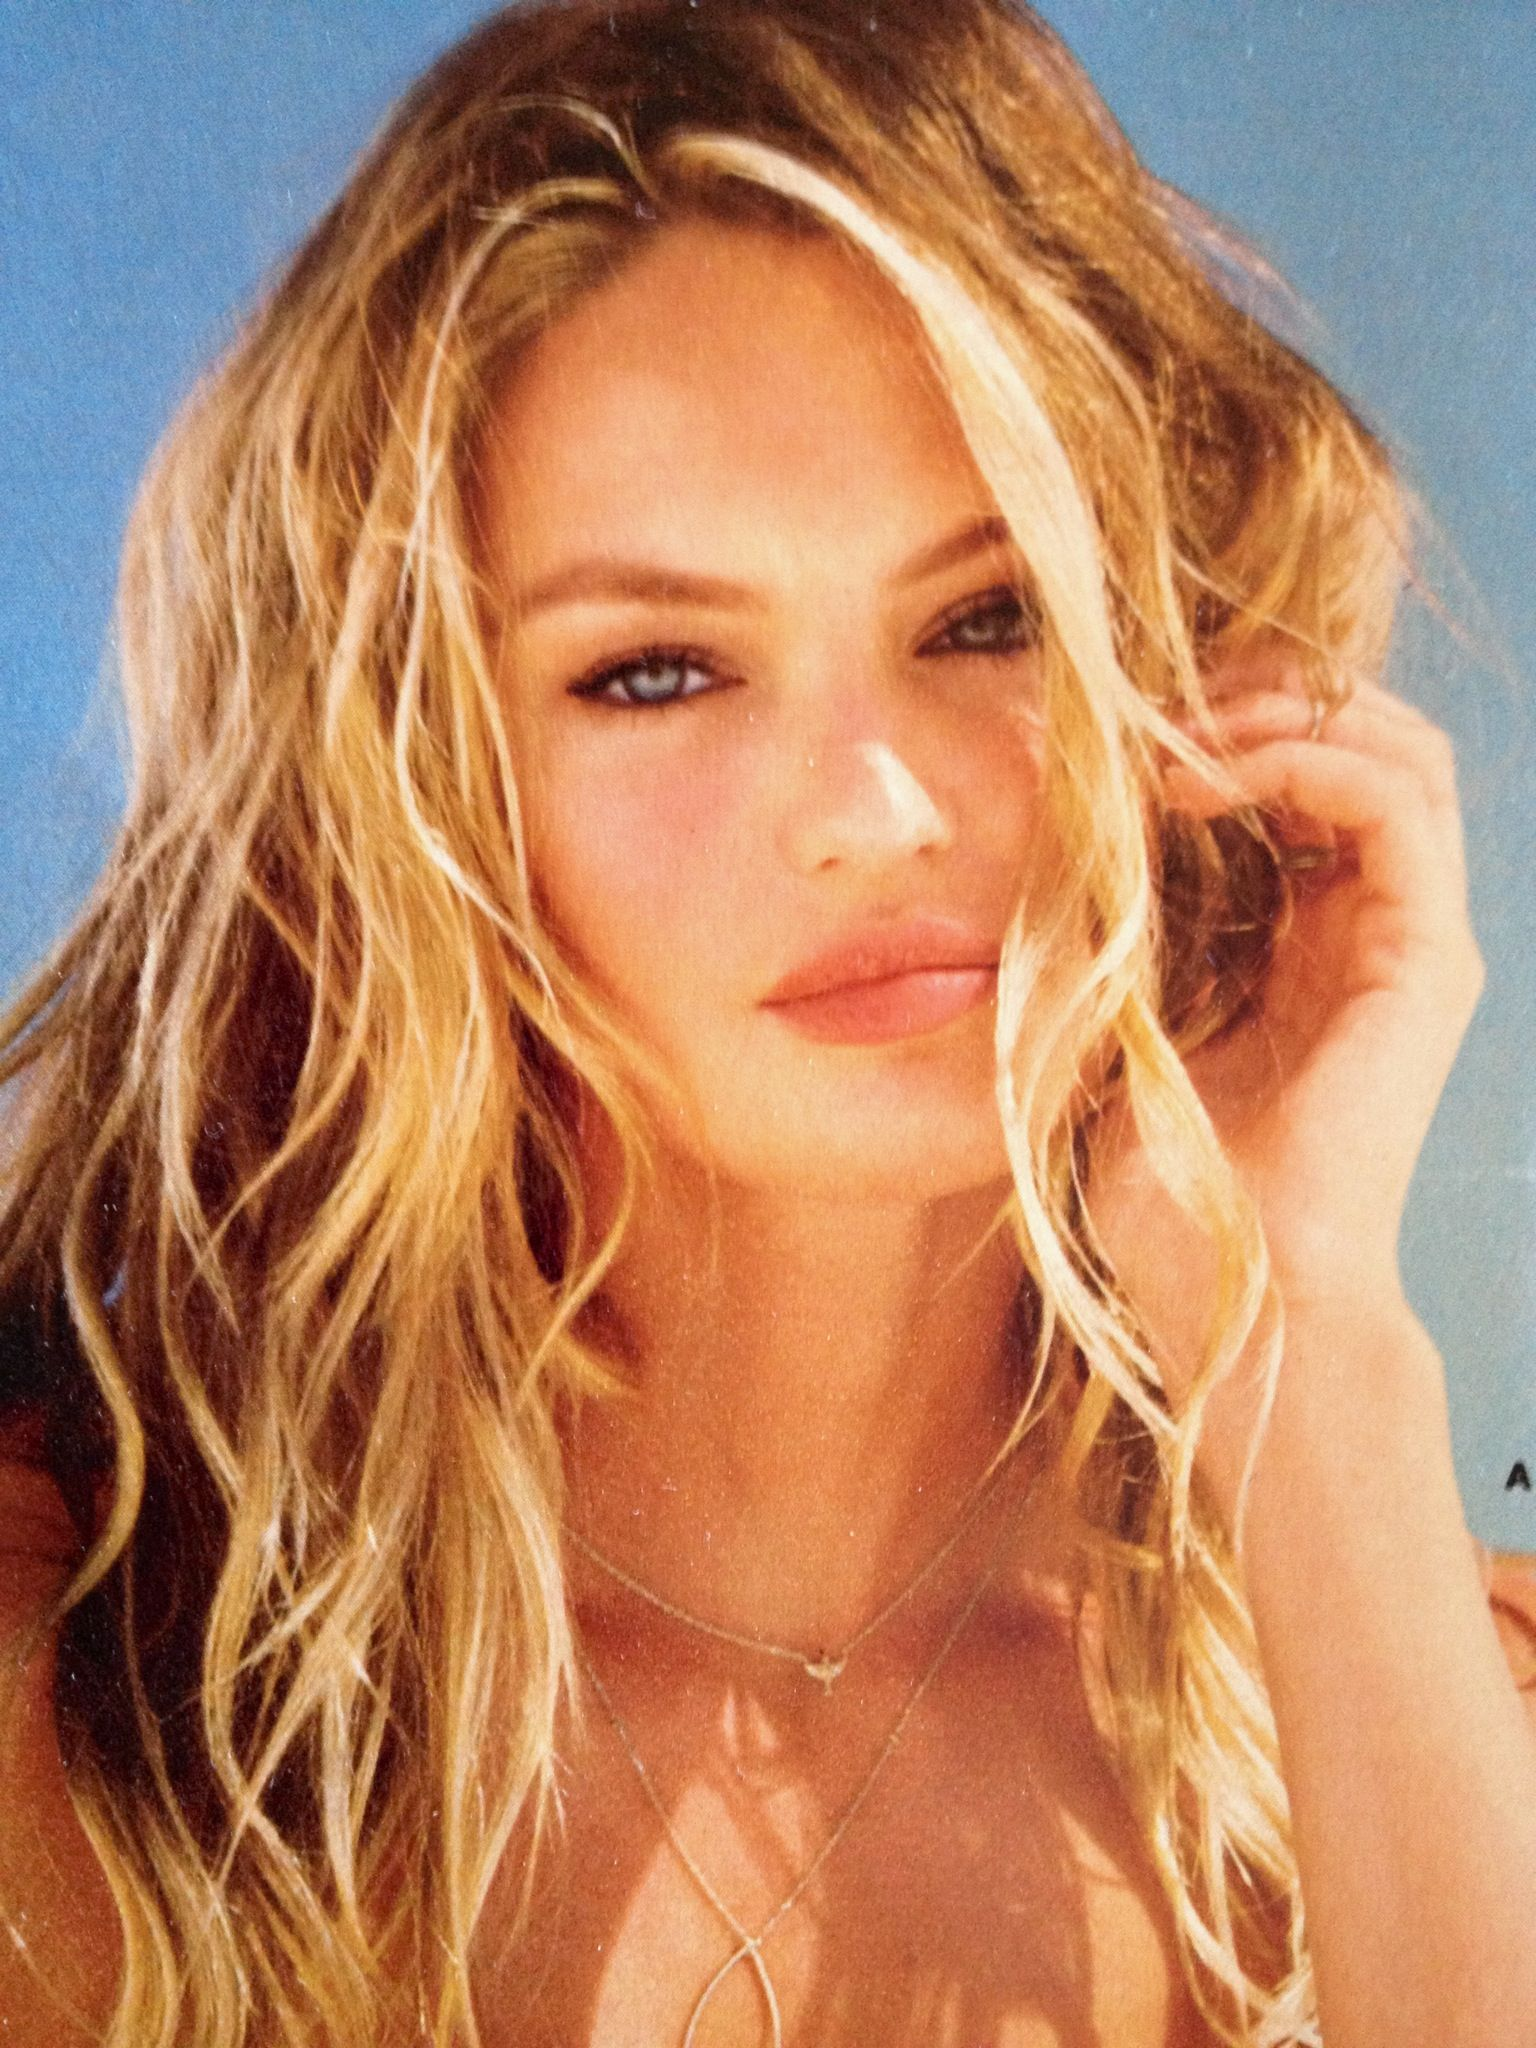 Communication on this topic: Candice Swanepoel's Organic DIY Mask for a , candice-swanepoels-organic-diy-mask-for-a/